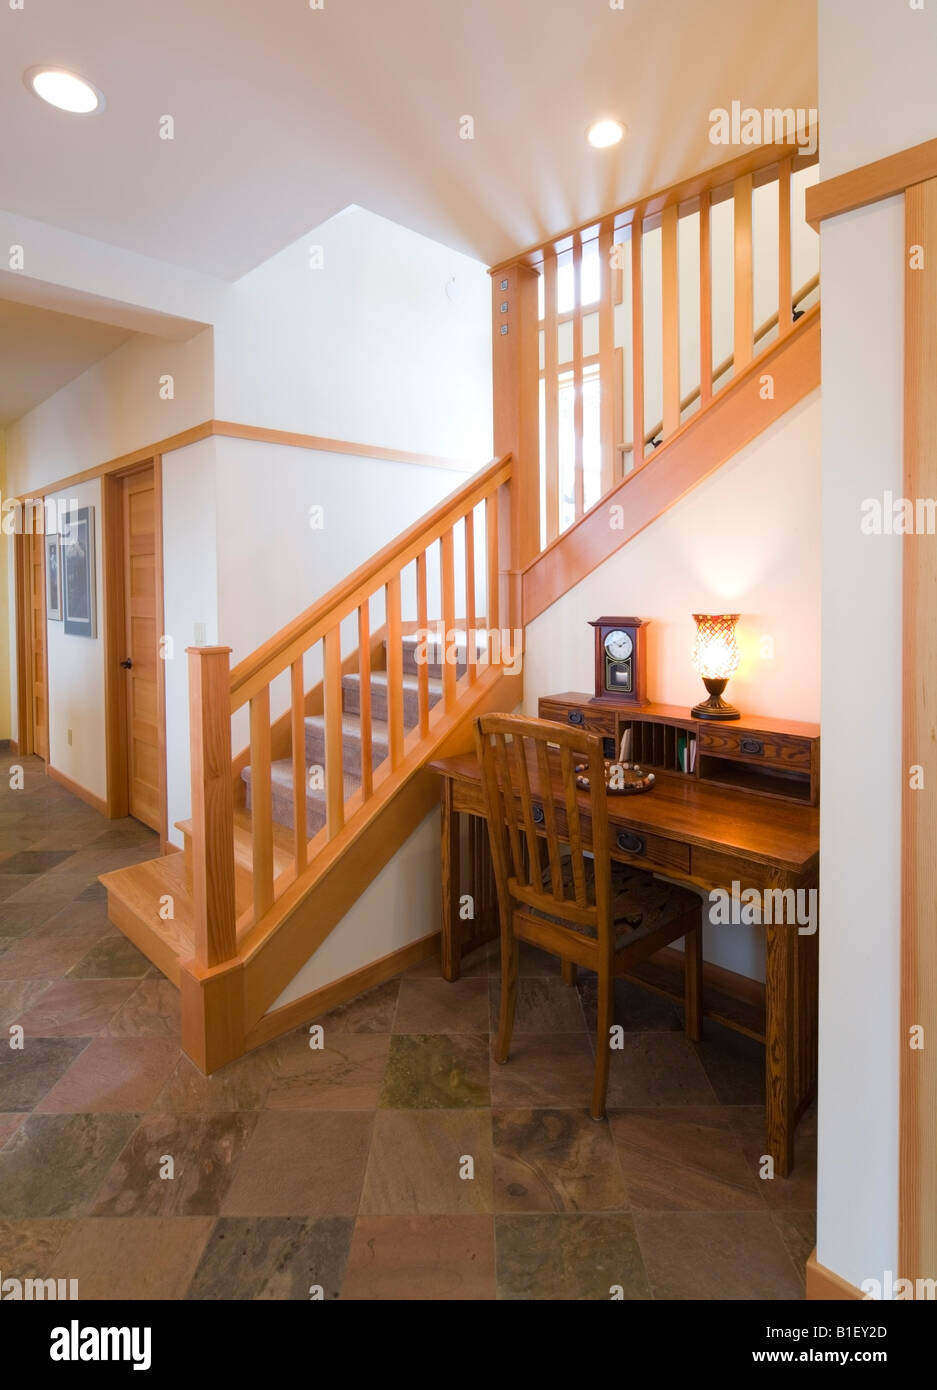 Inside View Of A Staircase In A Contemporary Craftsman Style Home,  Anchorage Alaska.